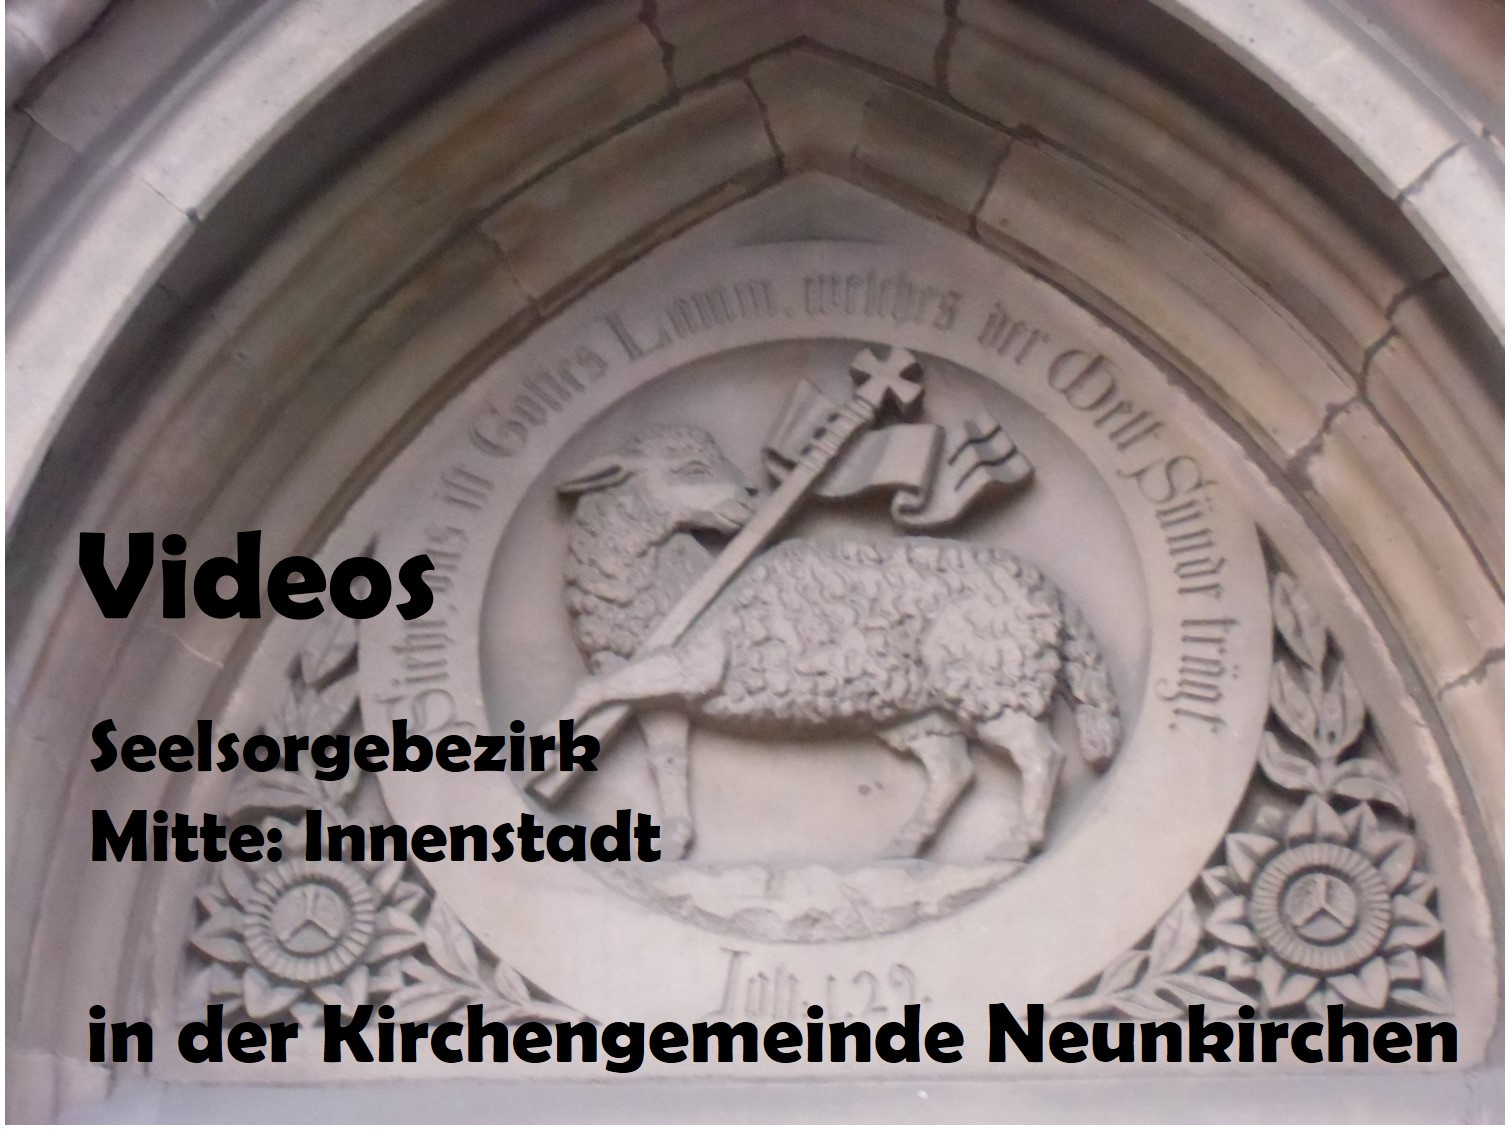 NK-Videos aus der Christuskirche